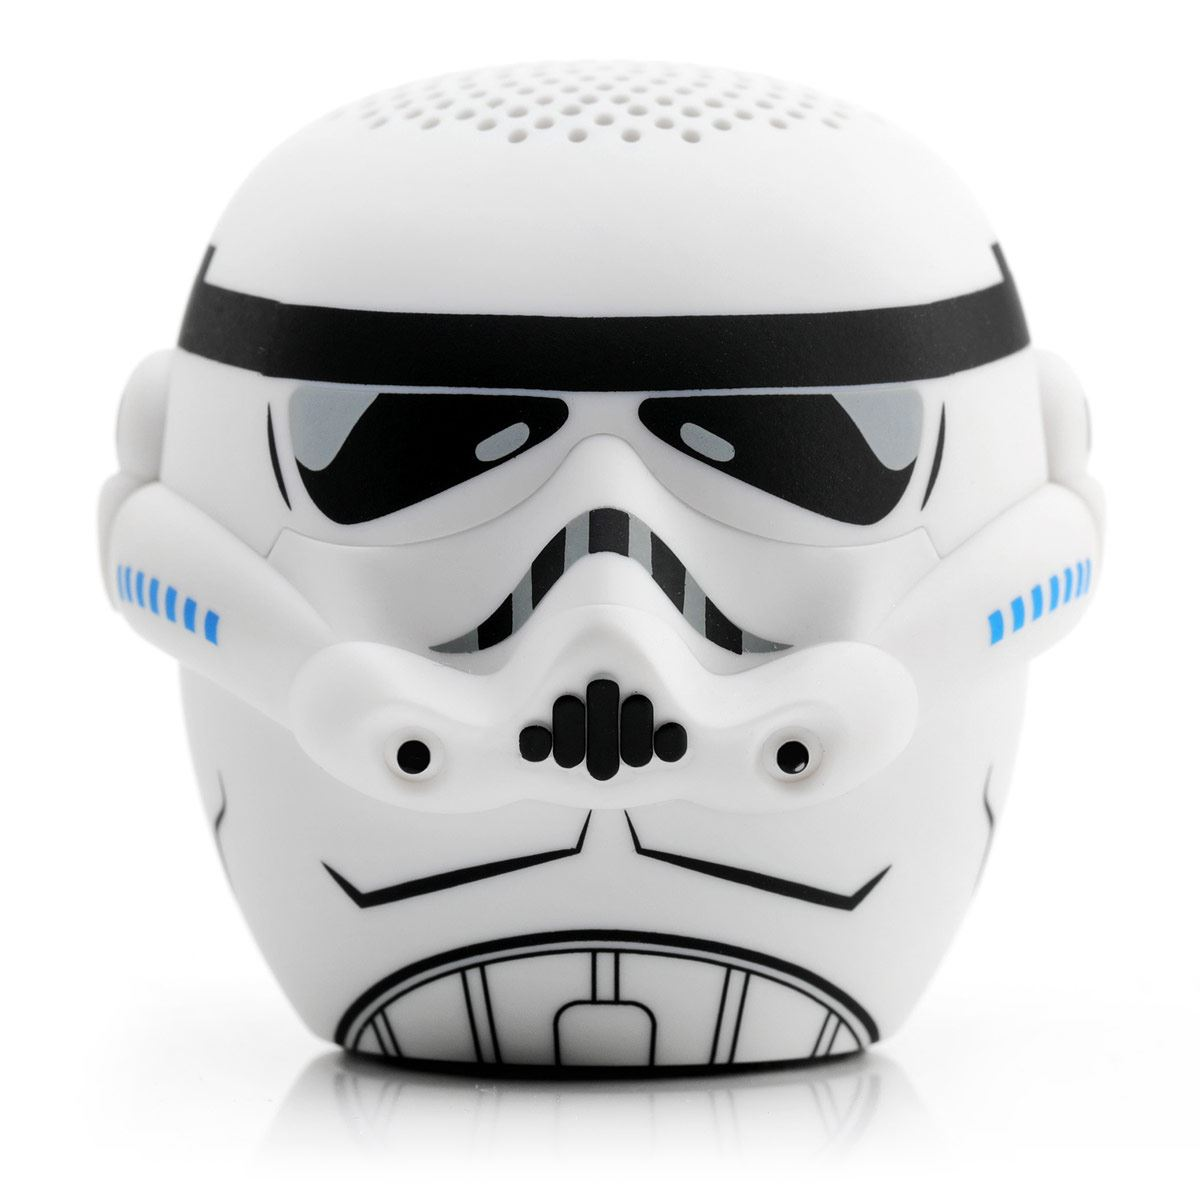 Bocina Bitty Boomers Bluetooth Stormtrooper